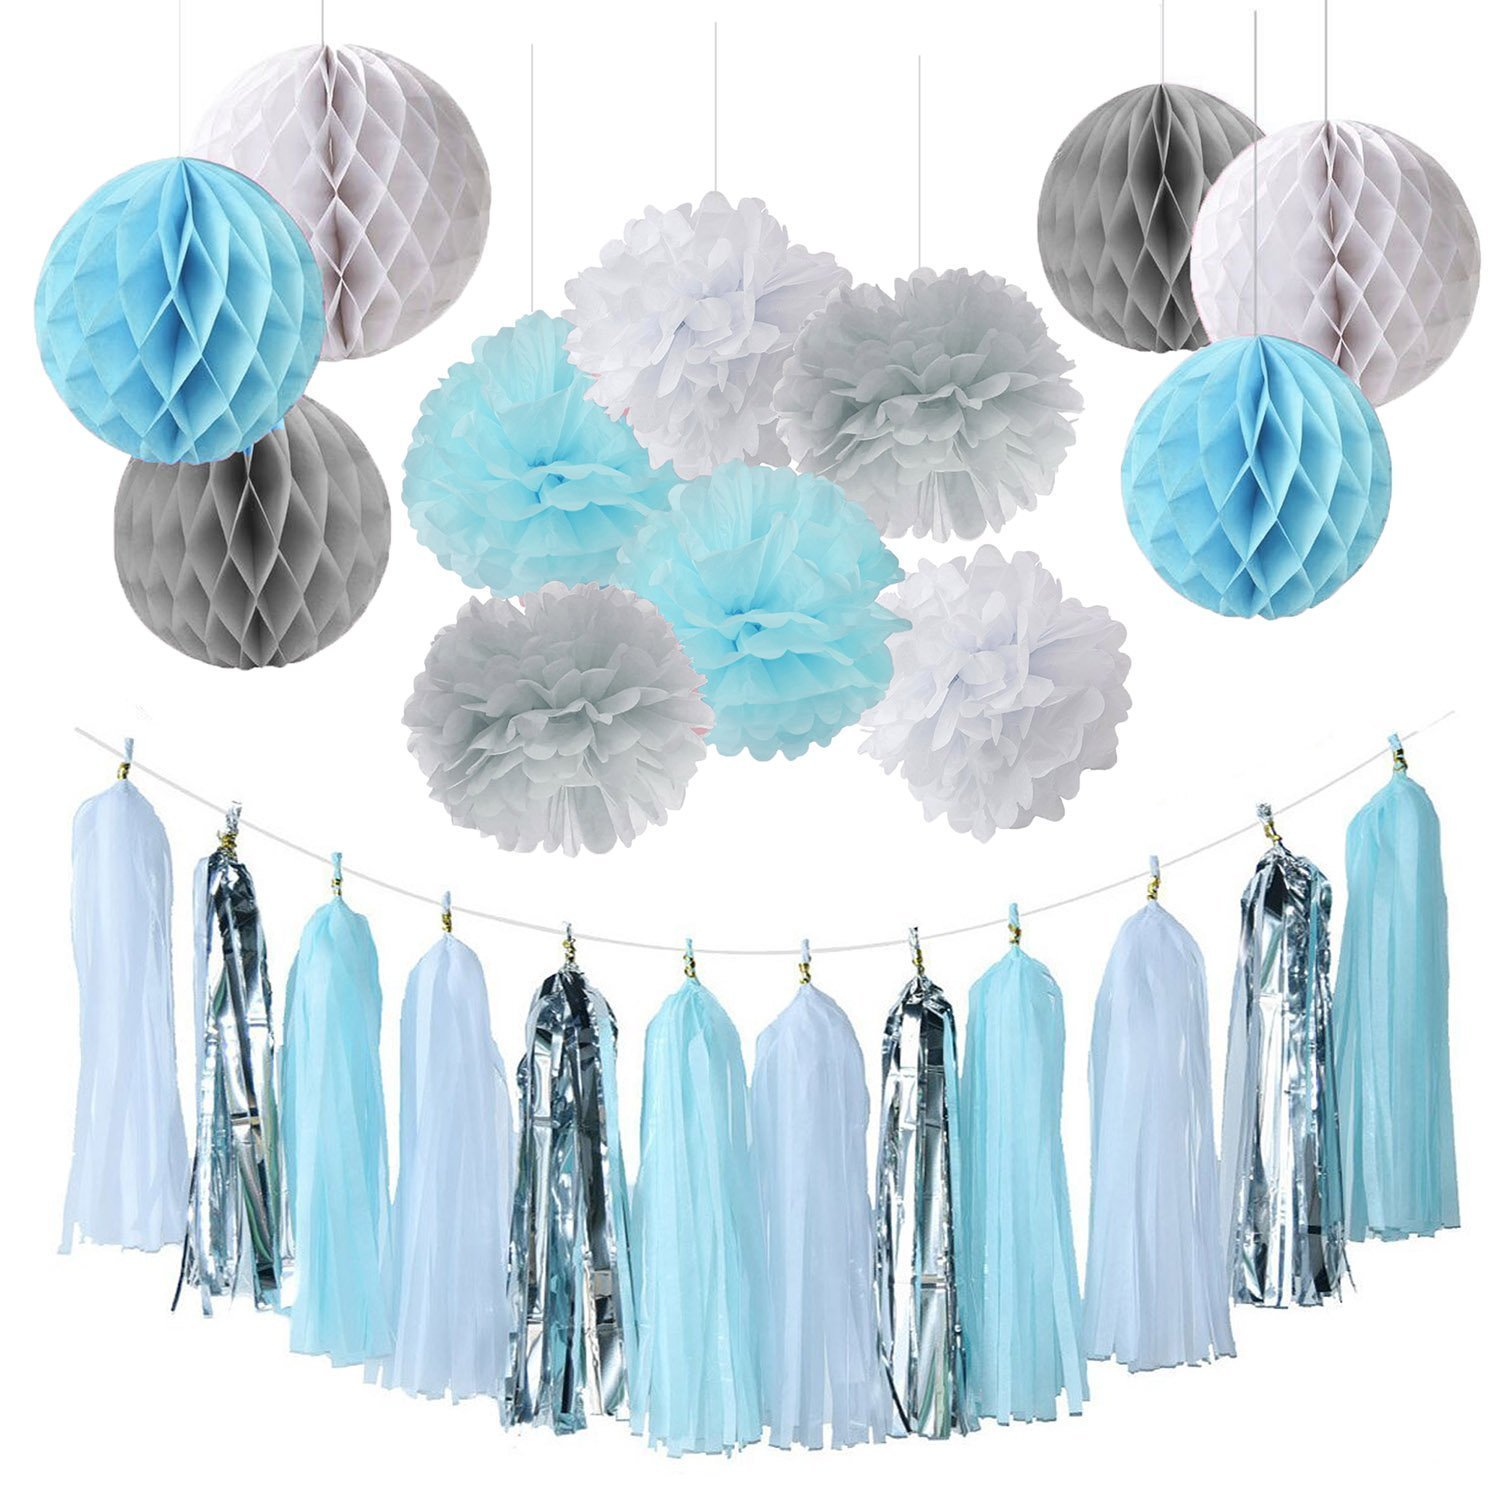 Qians Party Baby Boy Shower Decorations Backdrop Blue White Grey First Birthday Tissue Paper Pom Tassel Garland